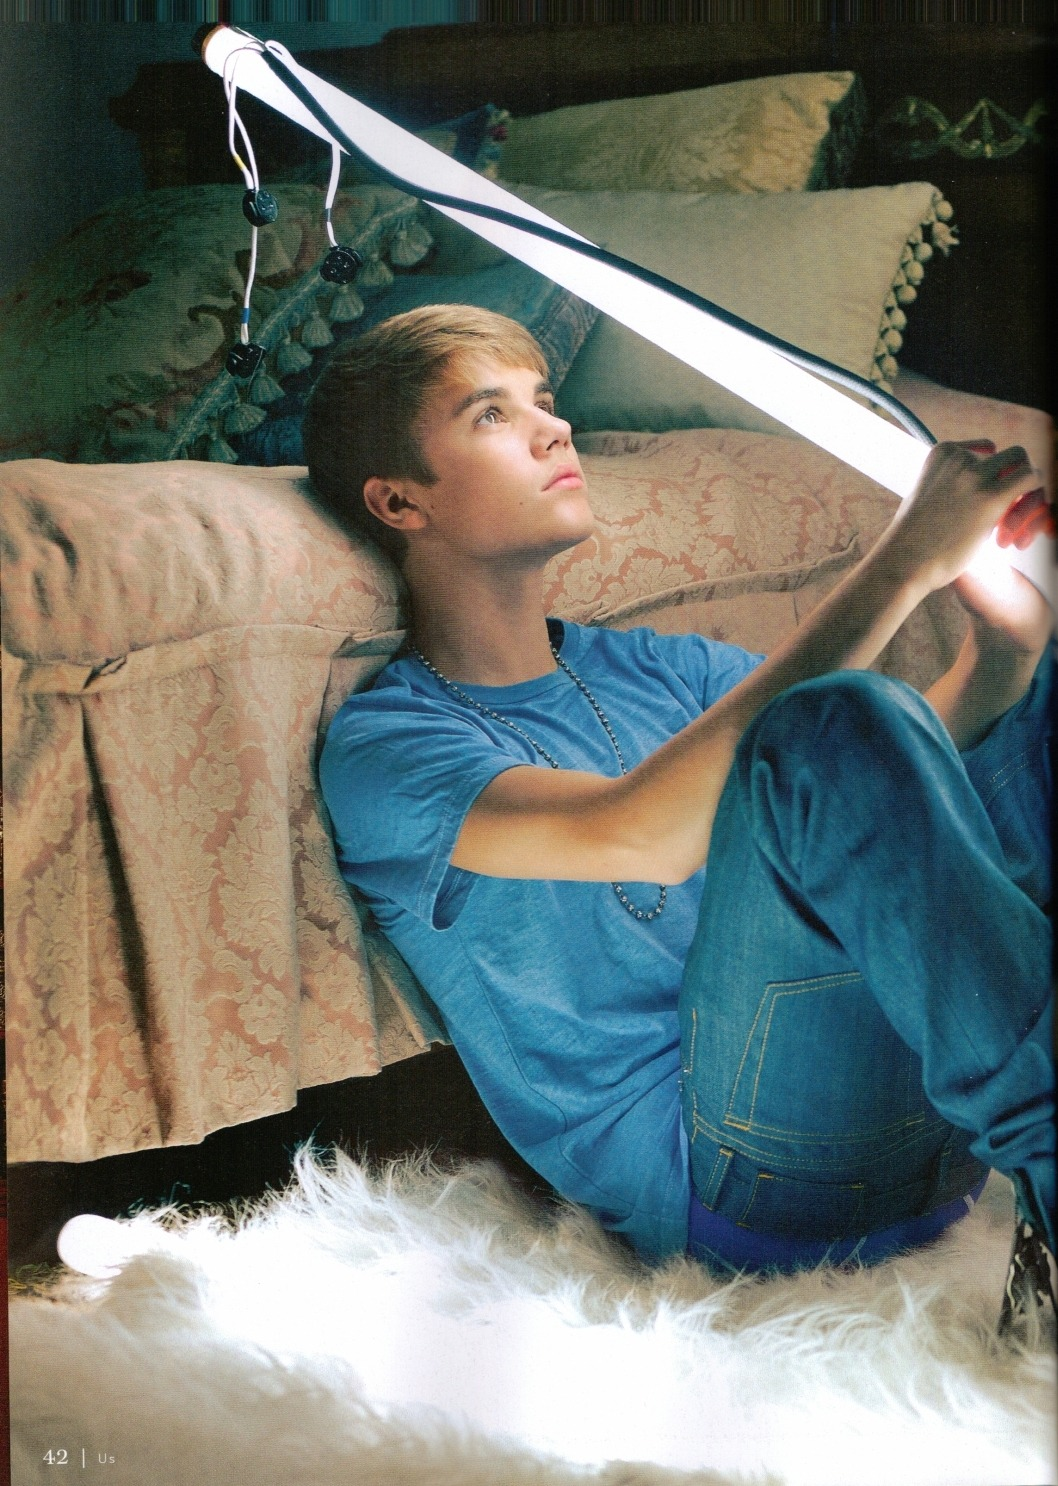 kidrauhl:  bieber-news:  Exclusive high quality scans from the US weekly magazine special edition. Big thanks to @ohitskidrauhl for sending us the scans!  excuse me but